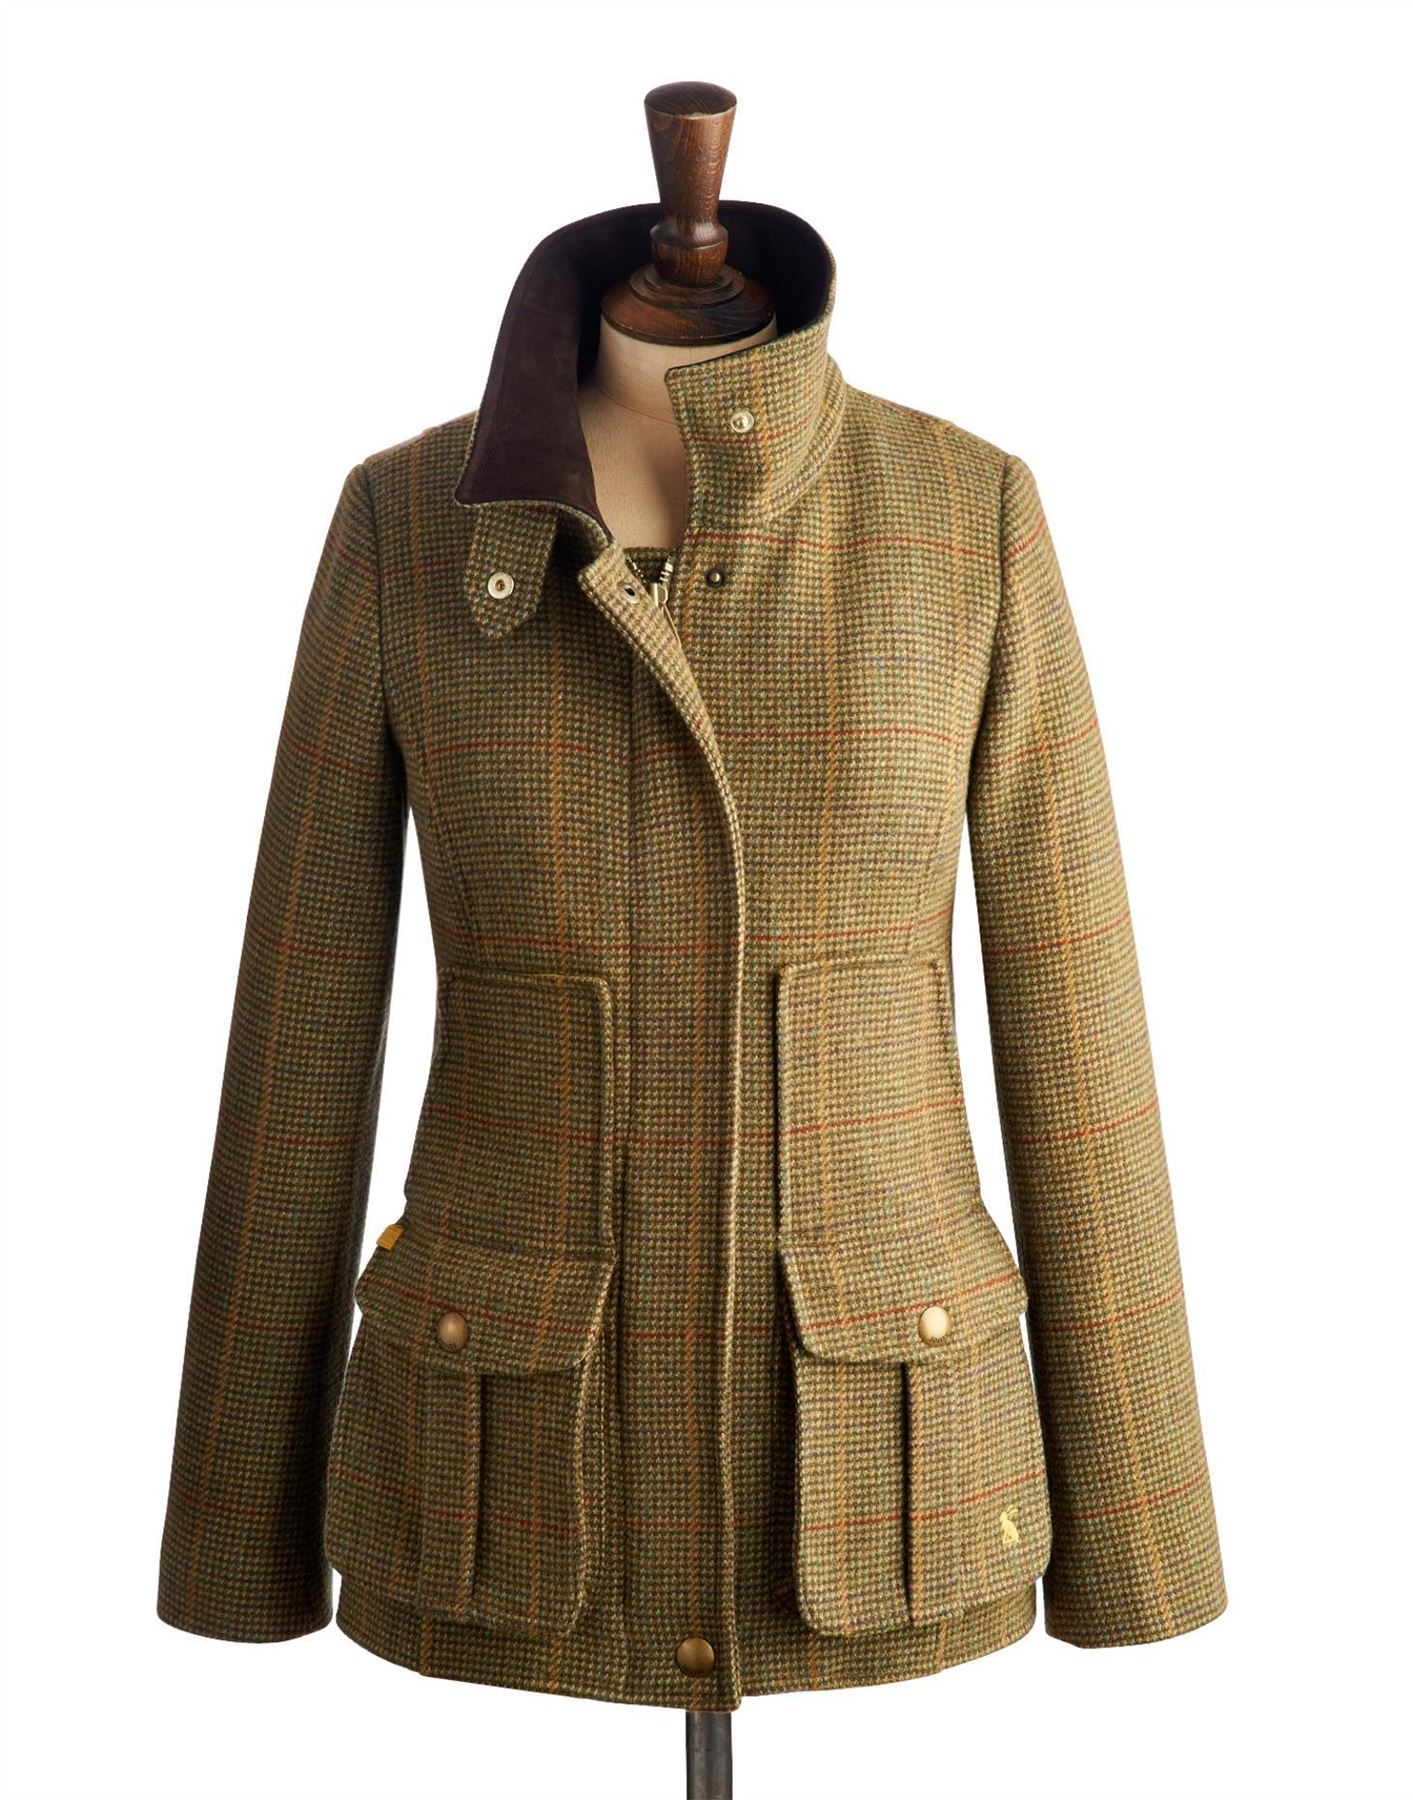 Shop eBay for great deals on Tweed Vintage Outerwear Coats & Jackets for Women. You'll find new or used products in Tweed Vintage Outerwear Coats & Jackets for .